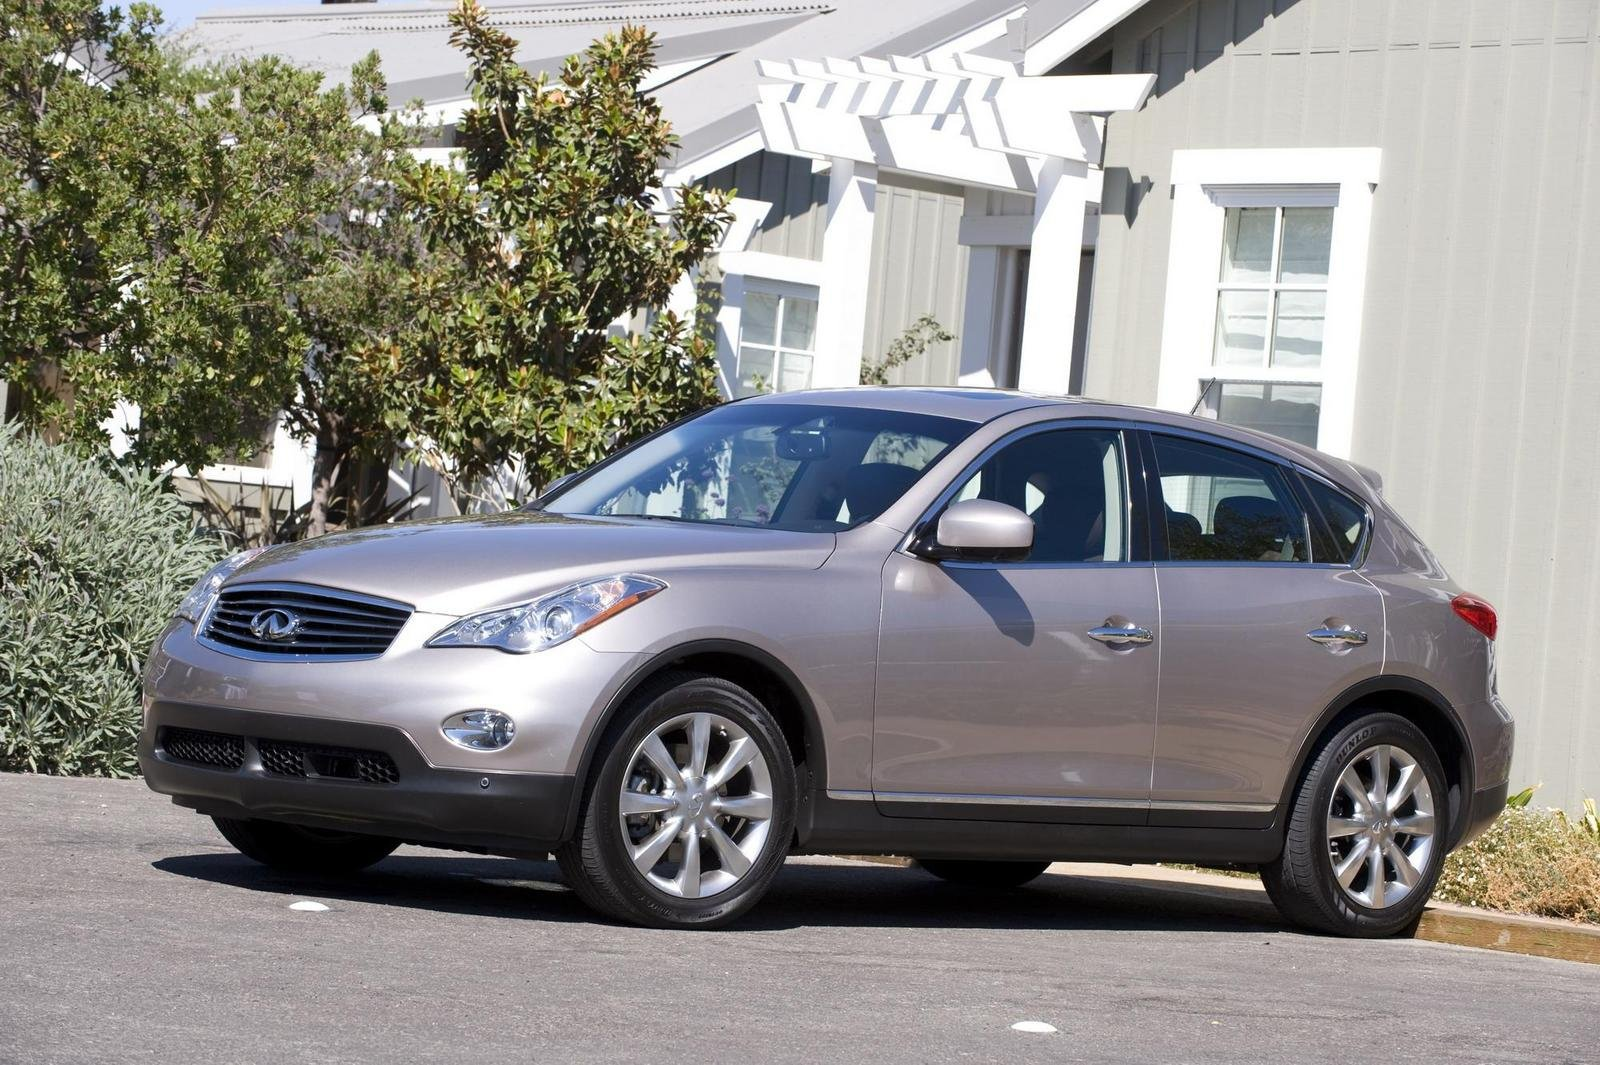 2010 infiniti ex35 picture 322494 car review top speed. Black Bedroom Furniture Sets. Home Design Ideas